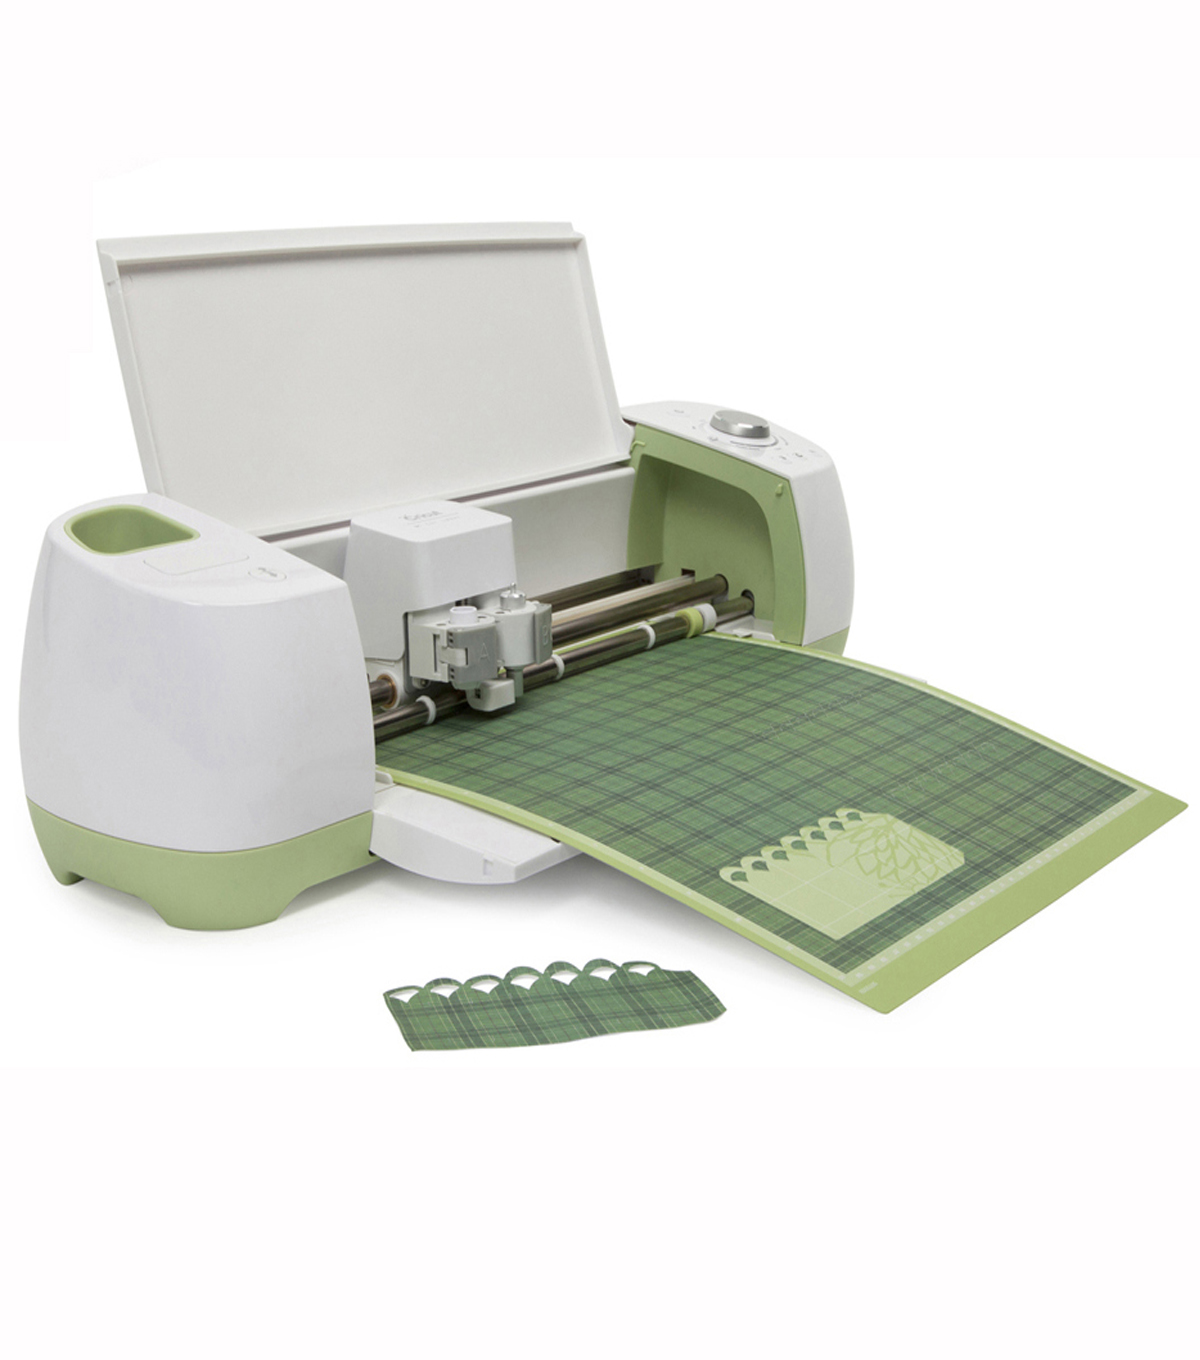 Cricut Explore Machine